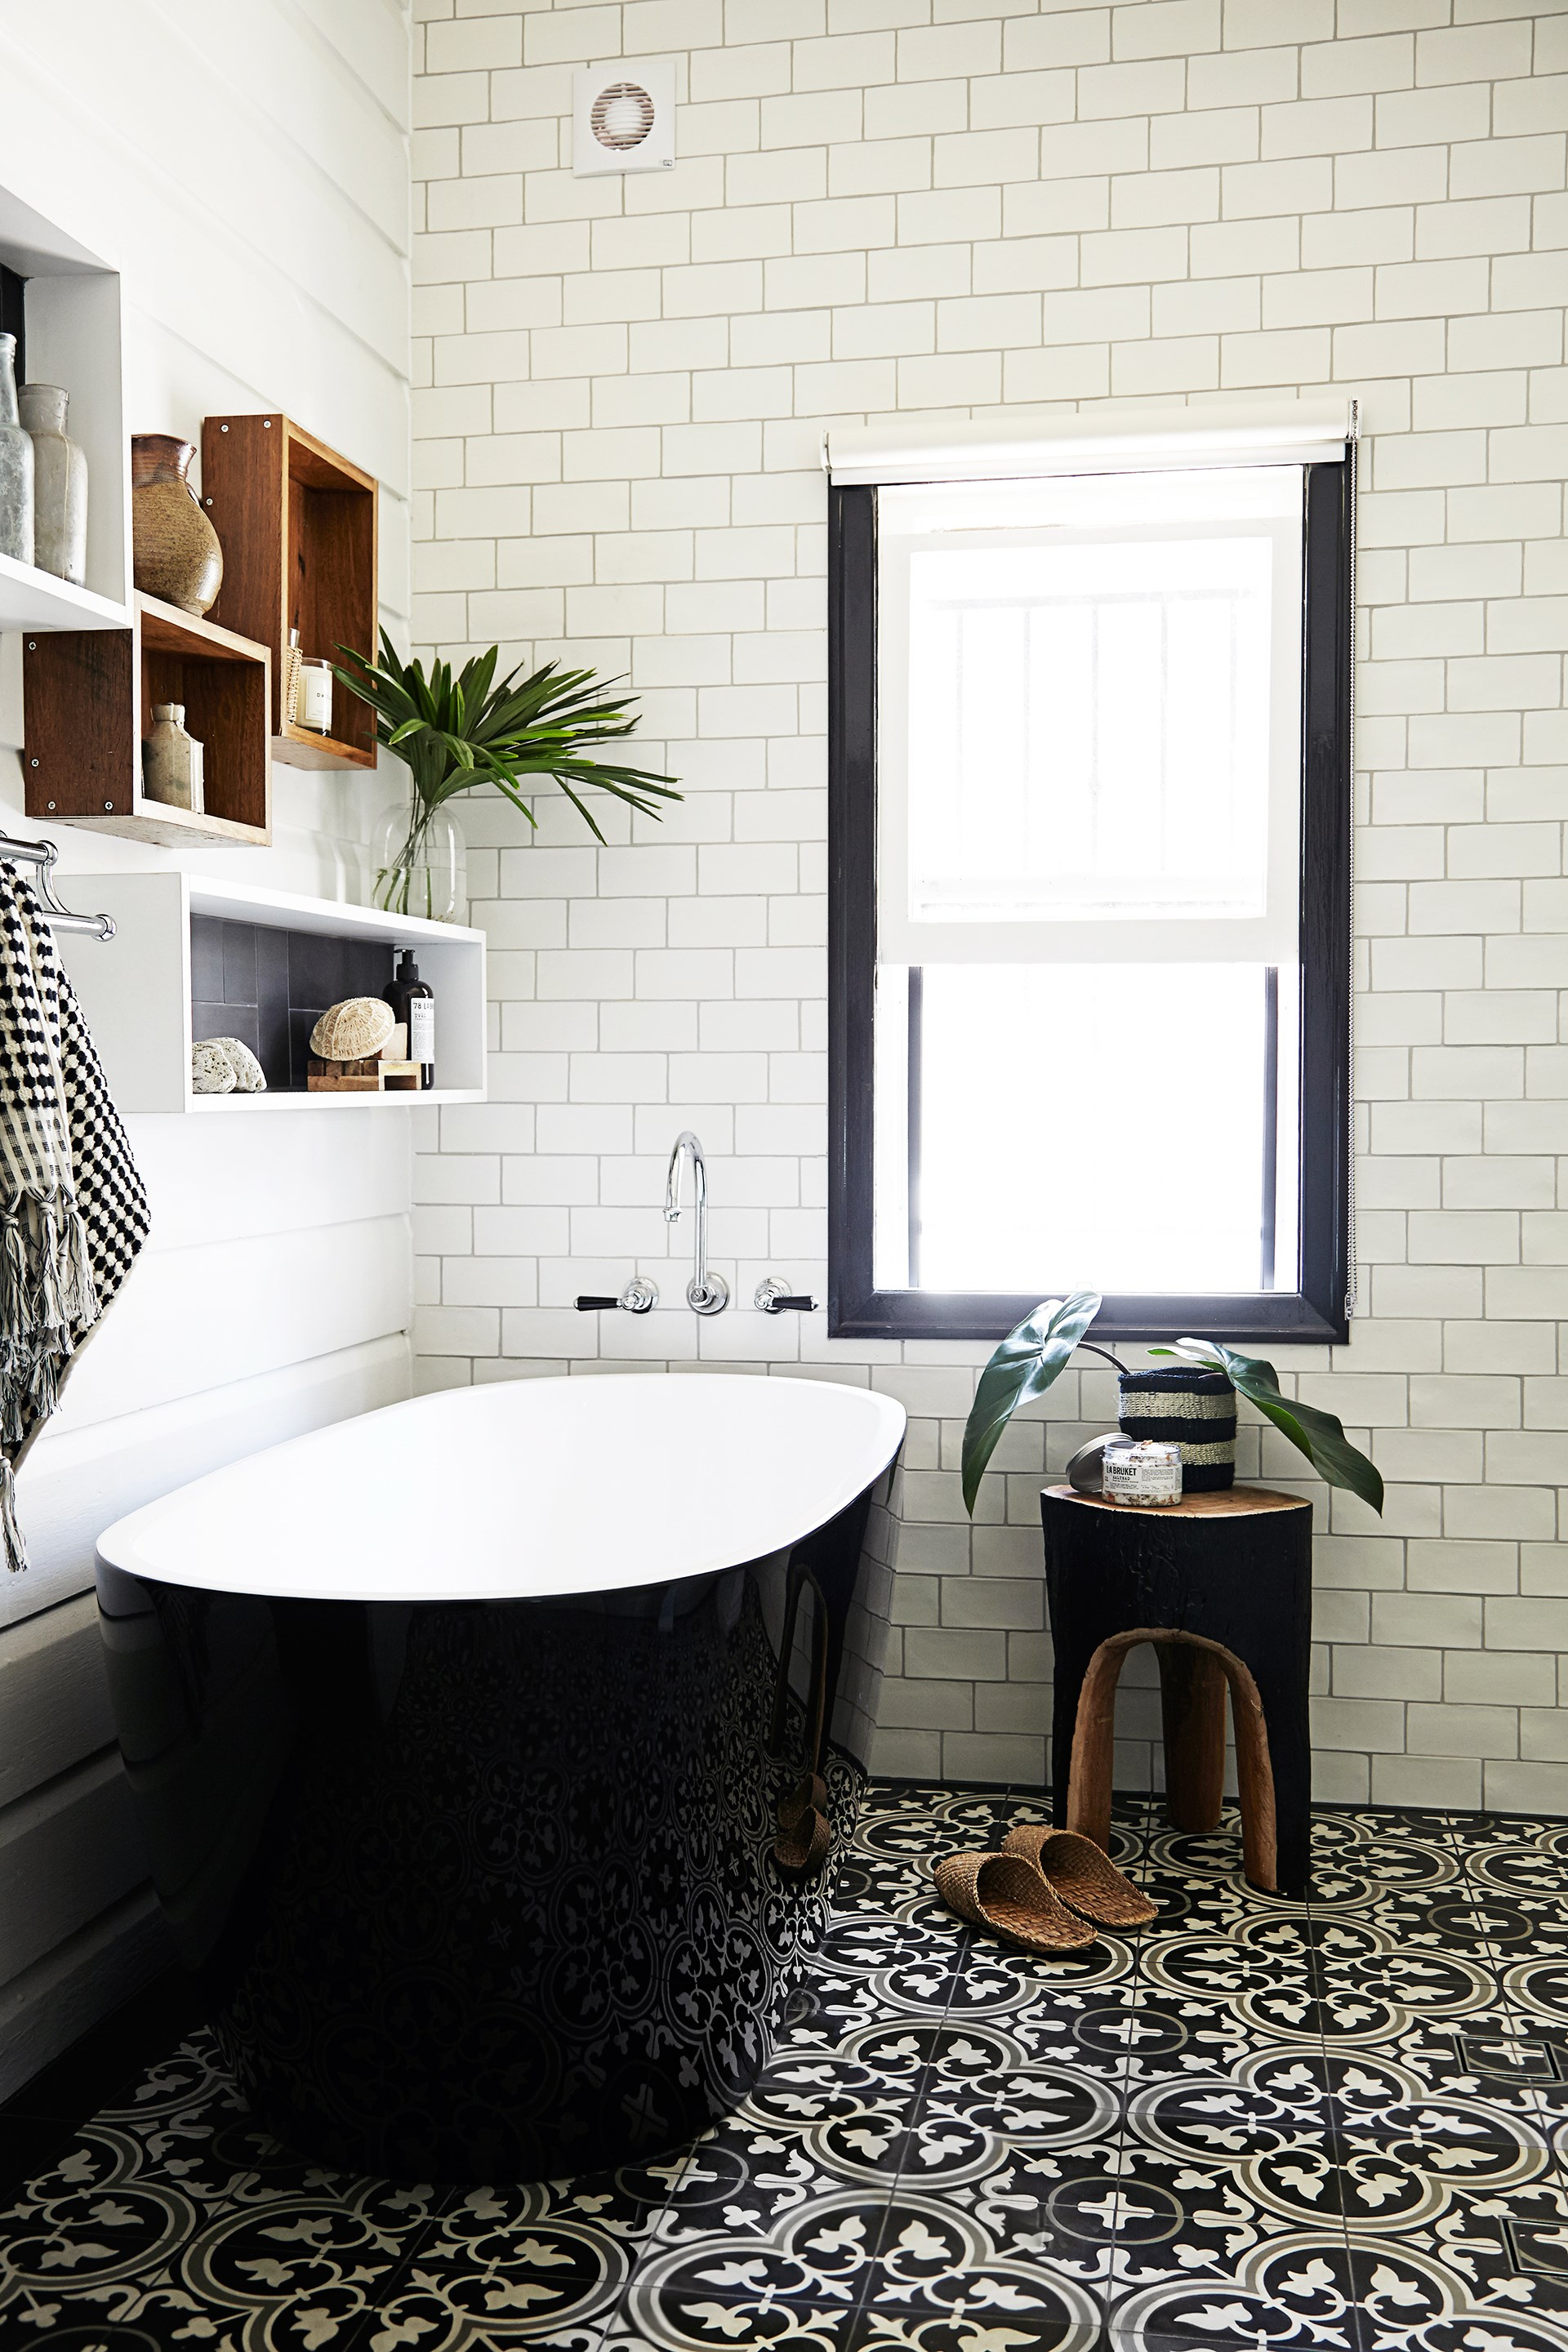 This [eco friendly bathroom](http://www.homestolove.com.au/a-brisbane-cottage-gets-an-eco-bathroom-renovation-1650) celebrates the heritage elements of the home with a modern touch. *Photo: Emma Reilly / Australian House & Garden*